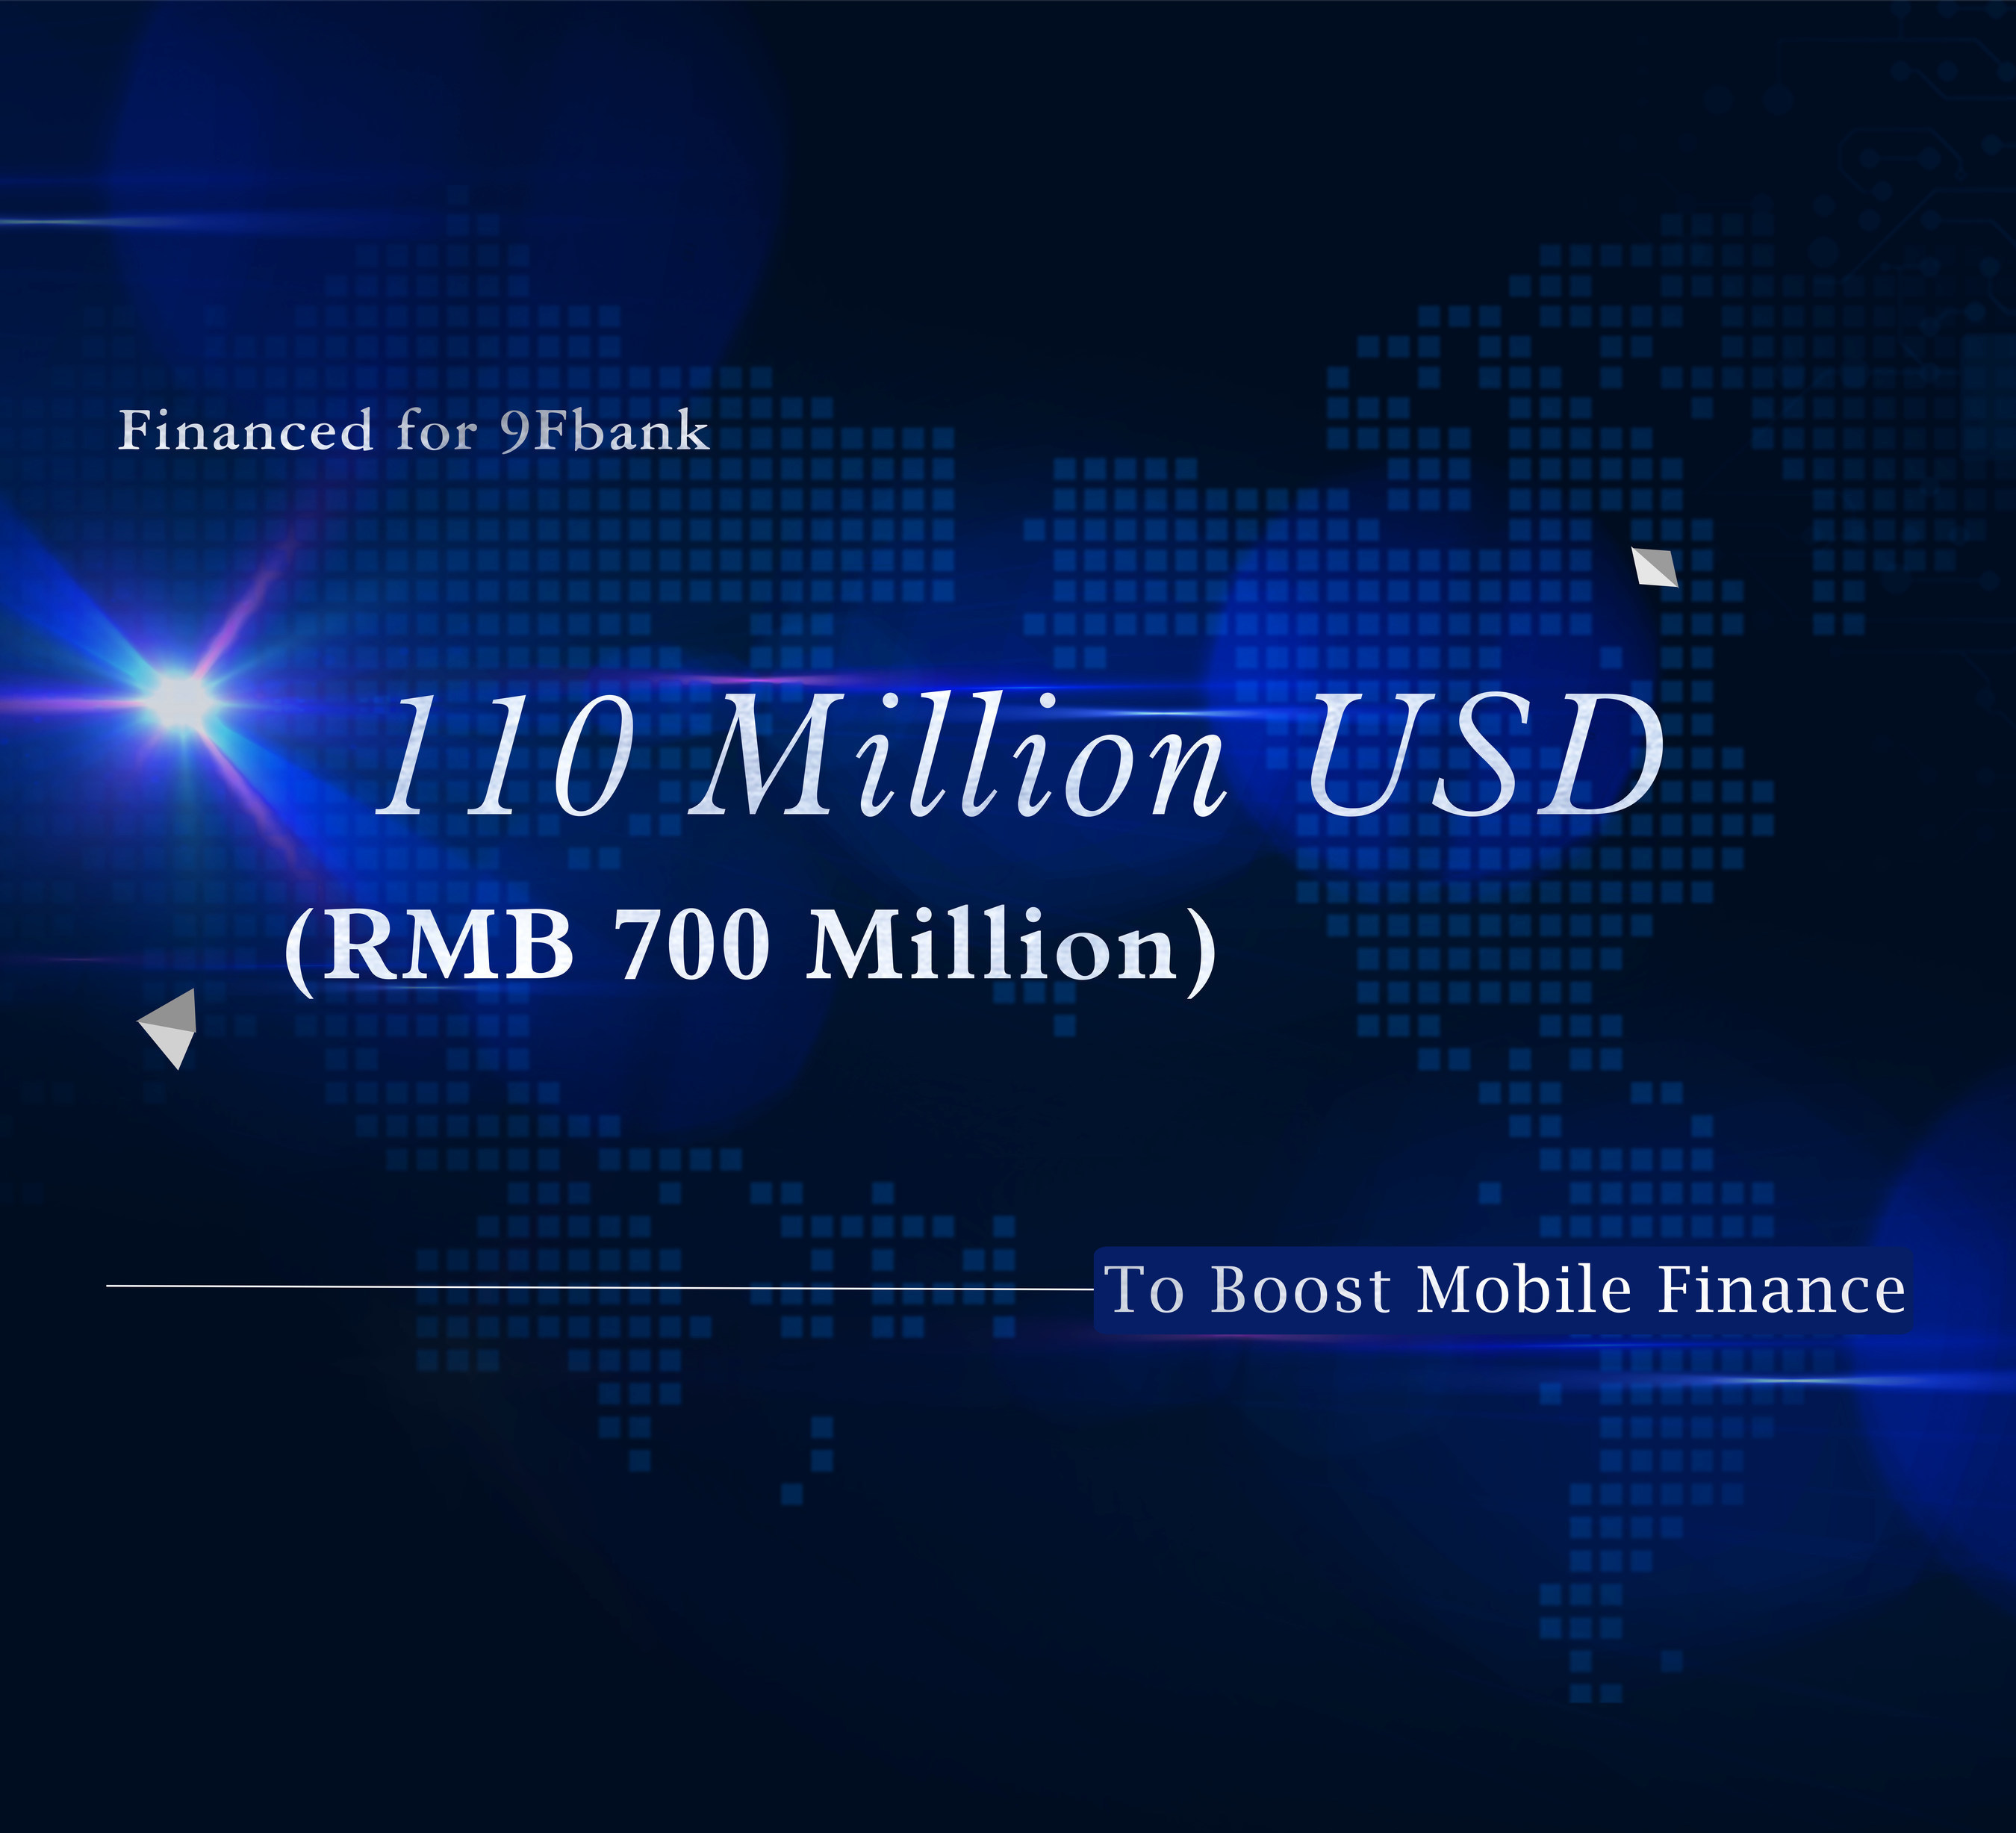 New Benchmark for 2015 -- 110 Million USD Financed for 9Fbank to Boost Mobile Finance